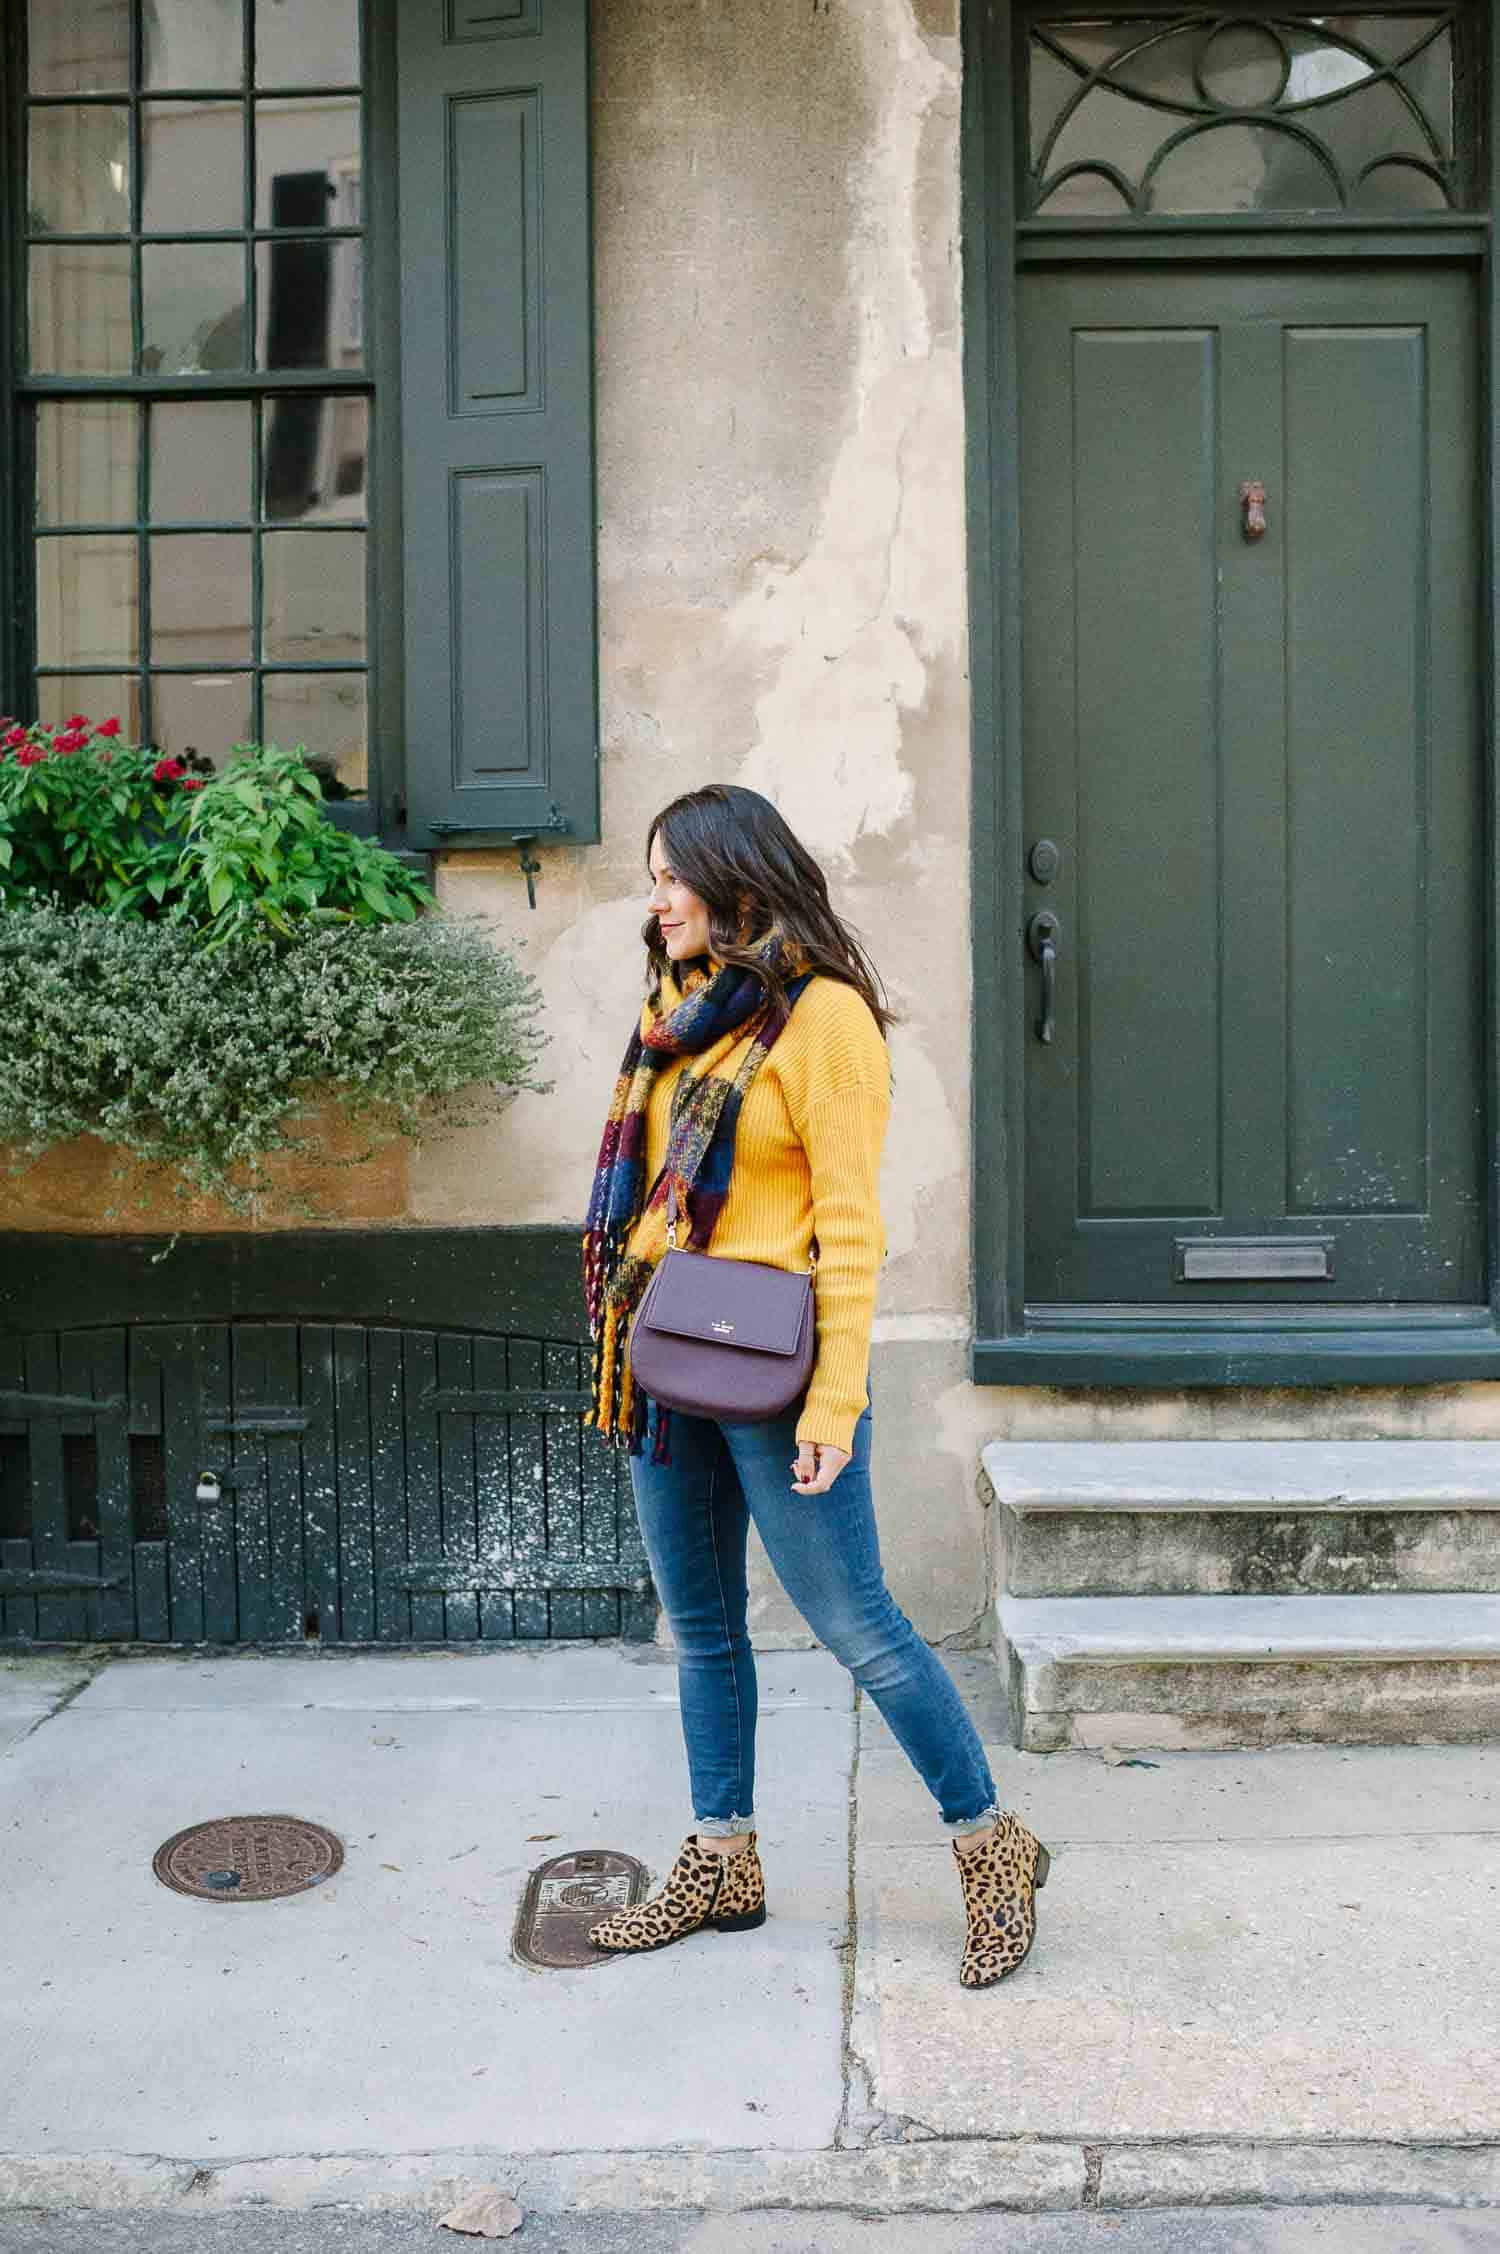 When packing for Charleston I wanted to be comfortable because it's a big walking city. I snagged this bold winter sweater in bright yellow from Nordstrom